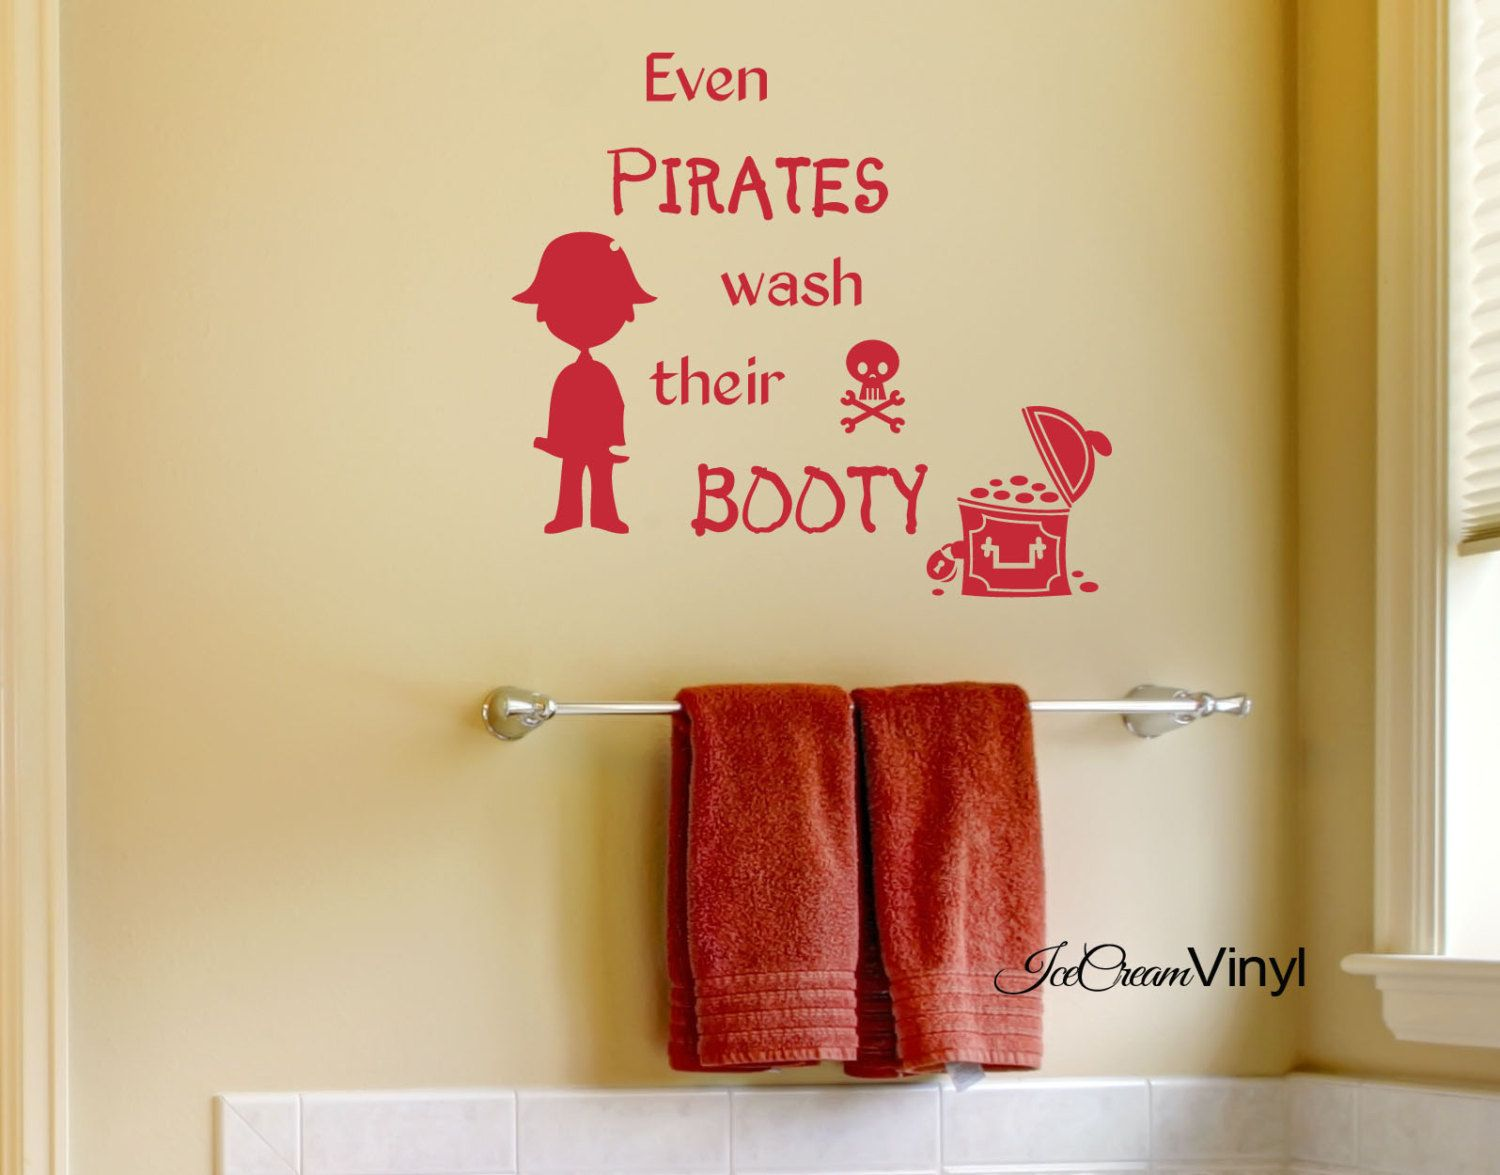 Pirate Vinyl Wall Decal Even Pirates Wash Their Booty Bathroom Wall ...